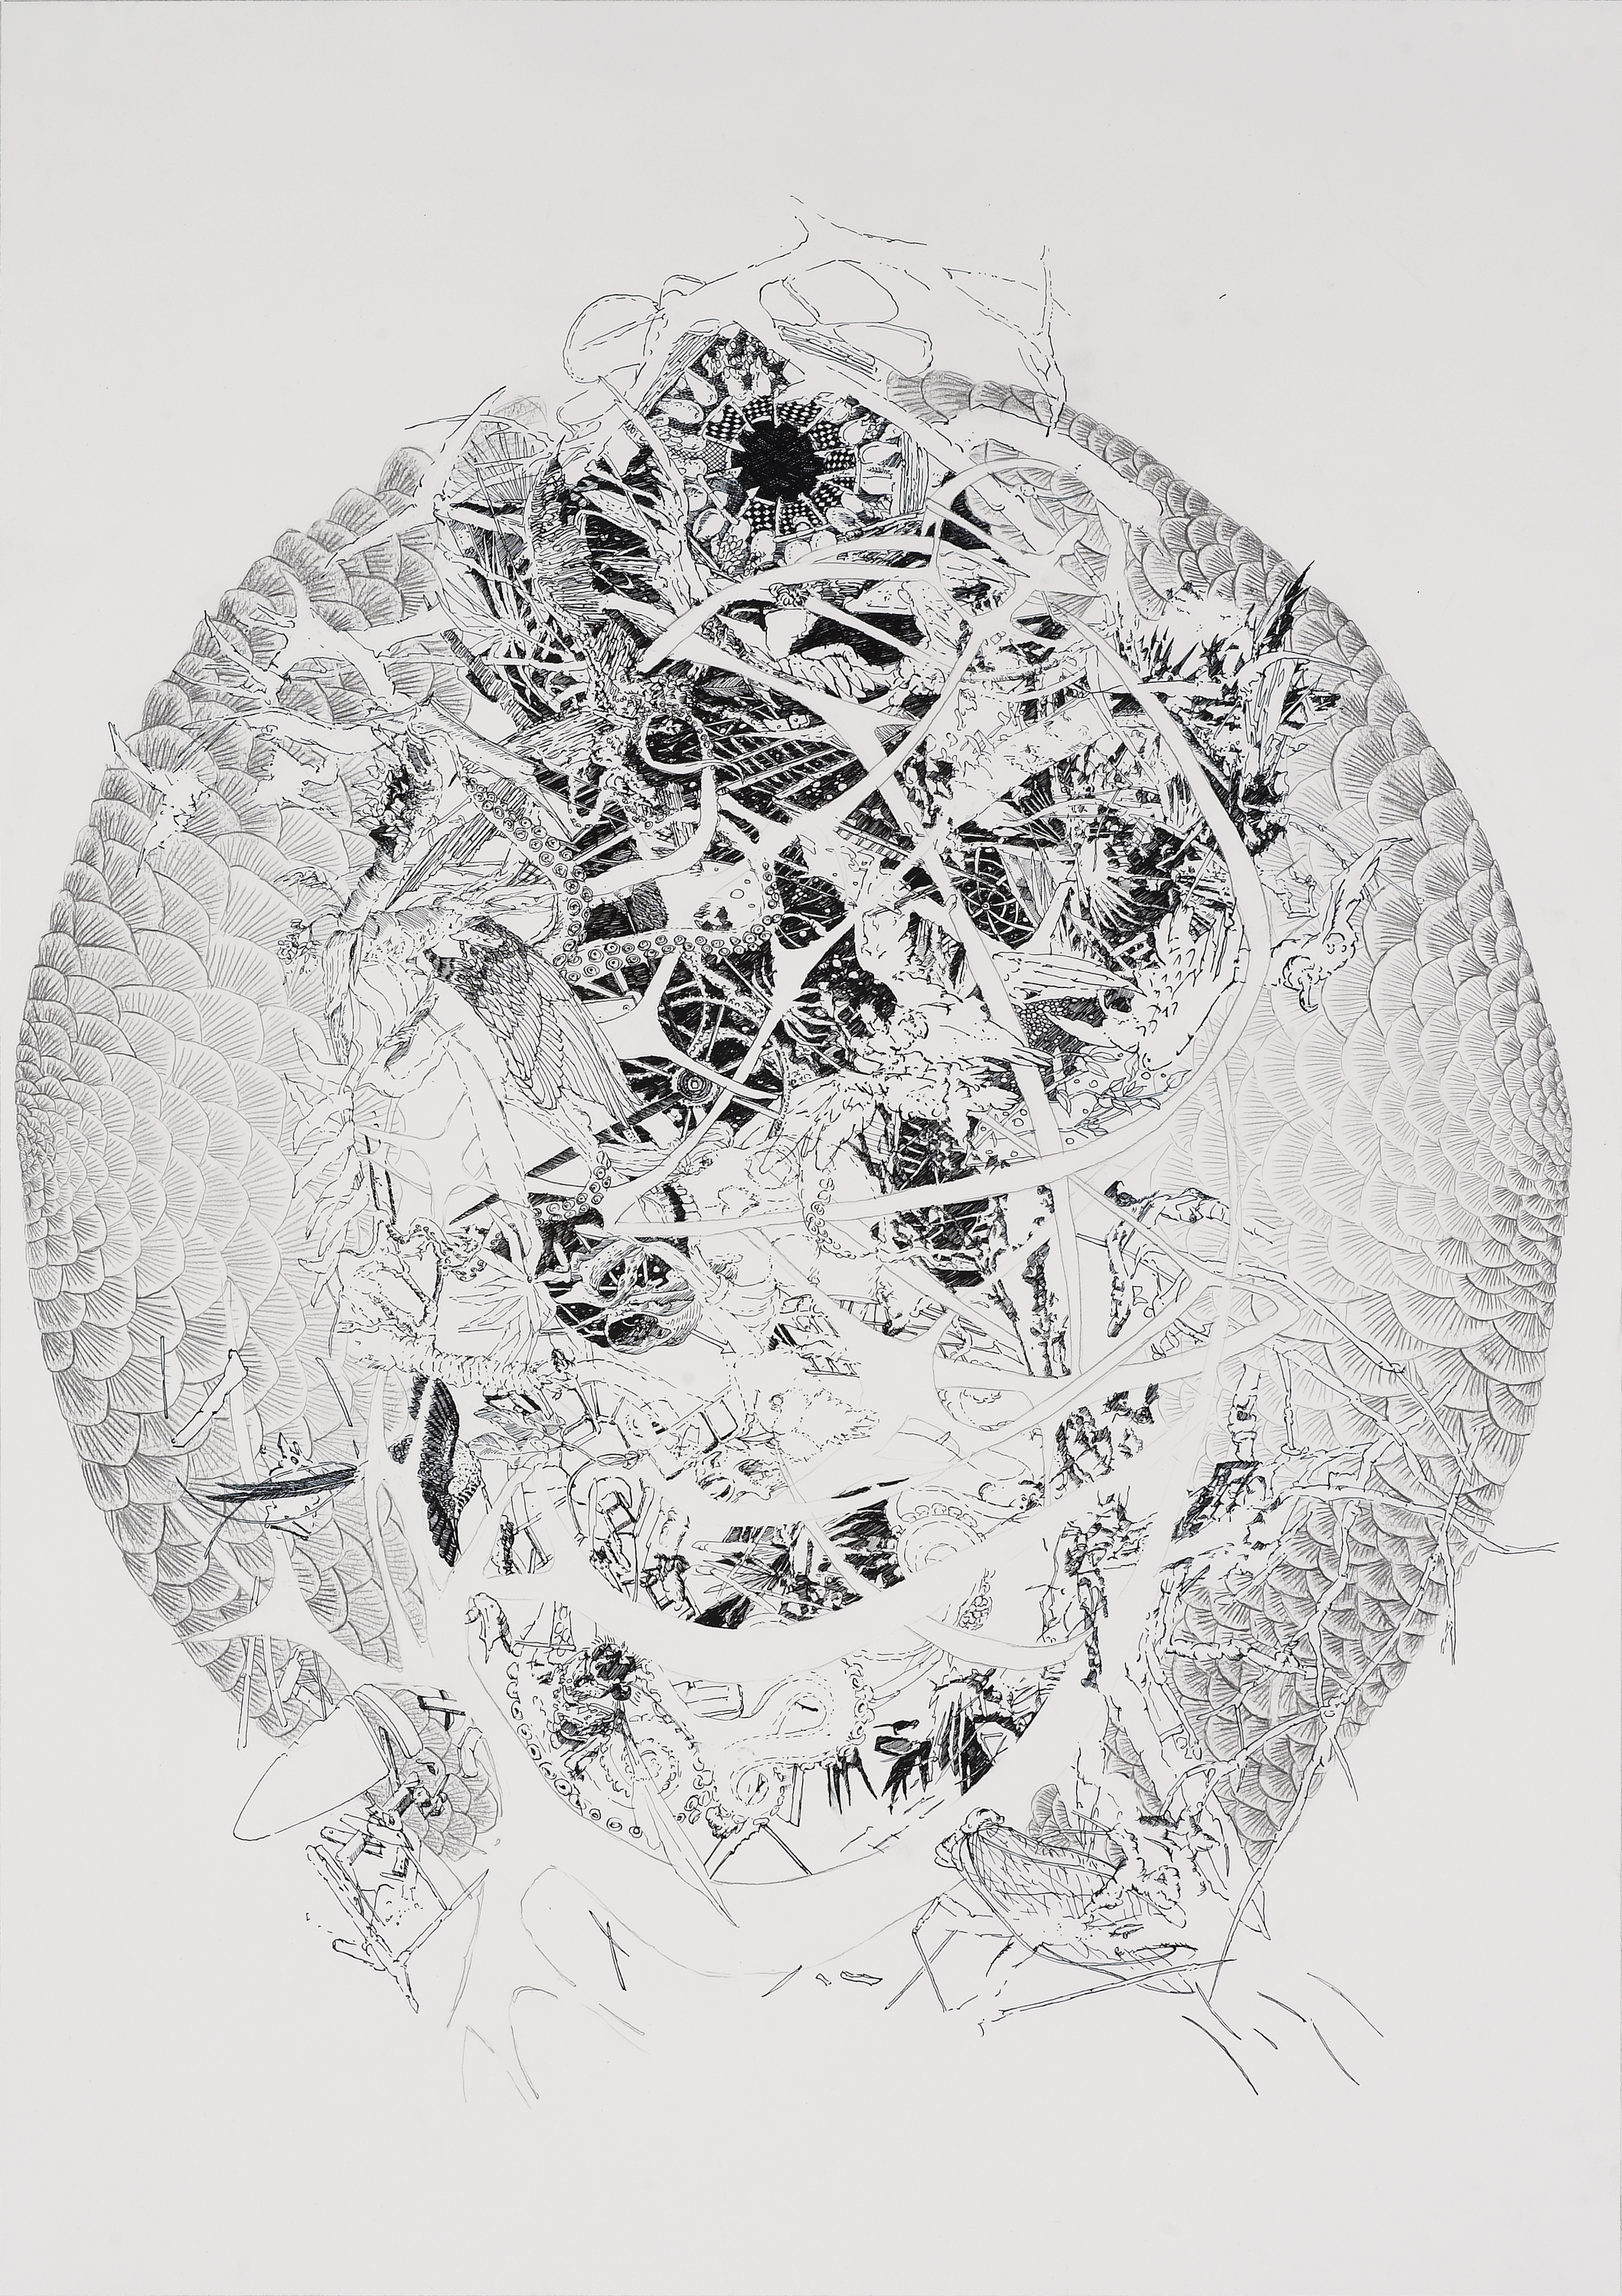 BK P4.002 | untitled | ink on paper | 100x70cm | 2011 | privat collection munich